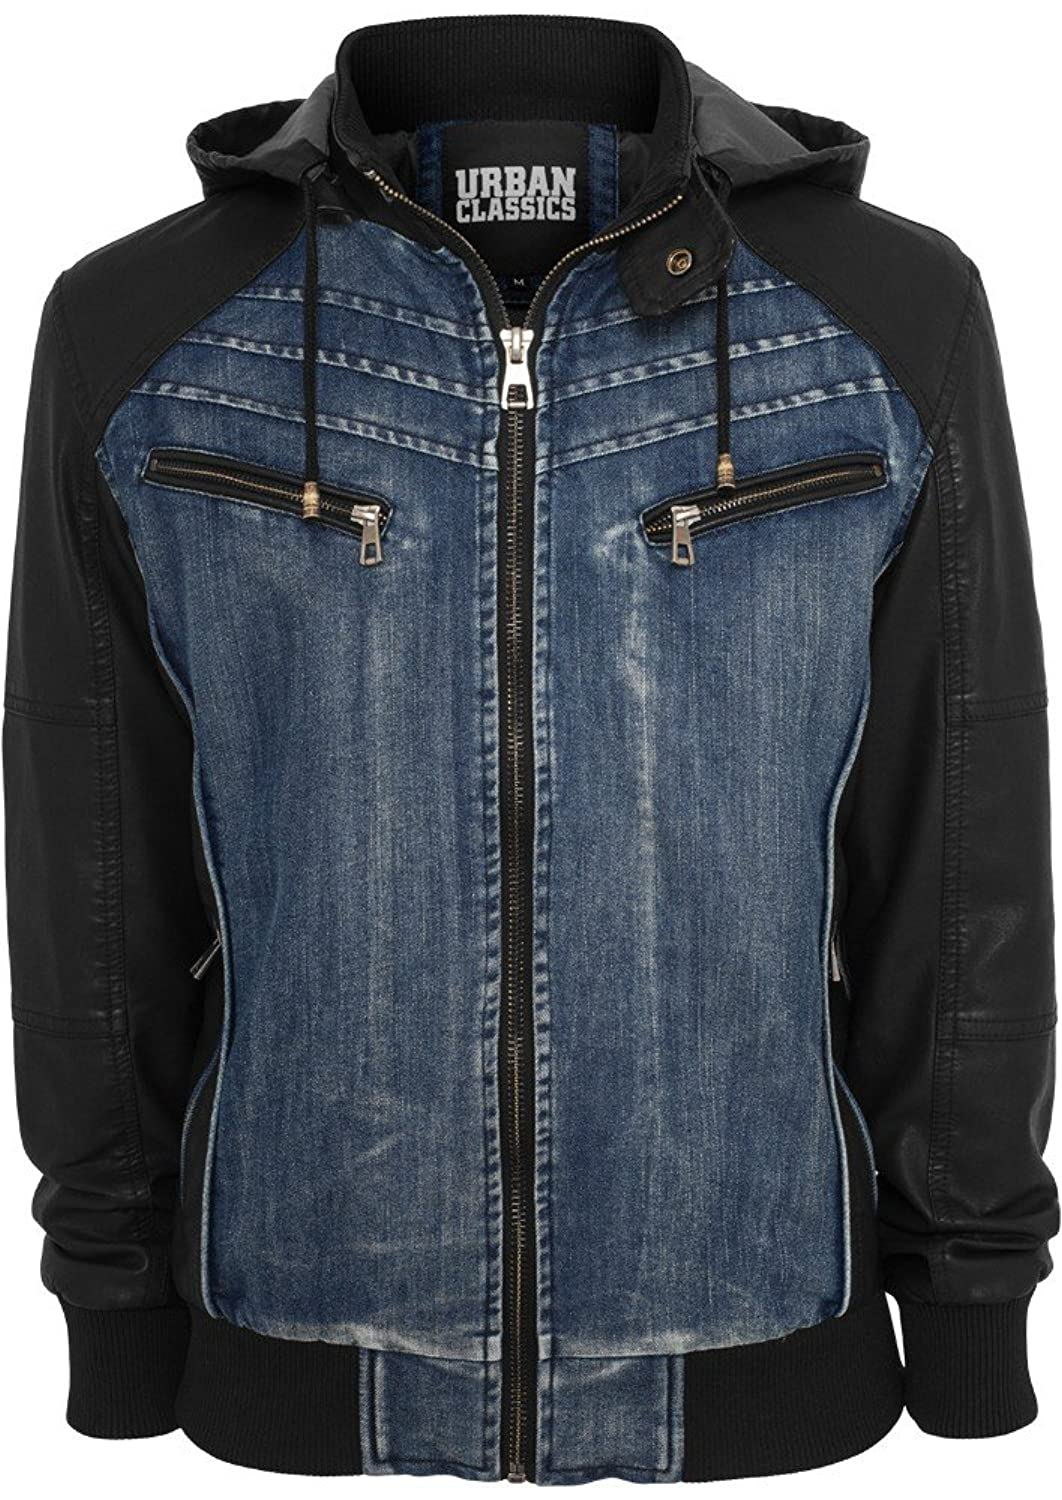 TB675 Hooded Denim Leather Jacket Herren Jacke Jeans Kapuze online bestellen